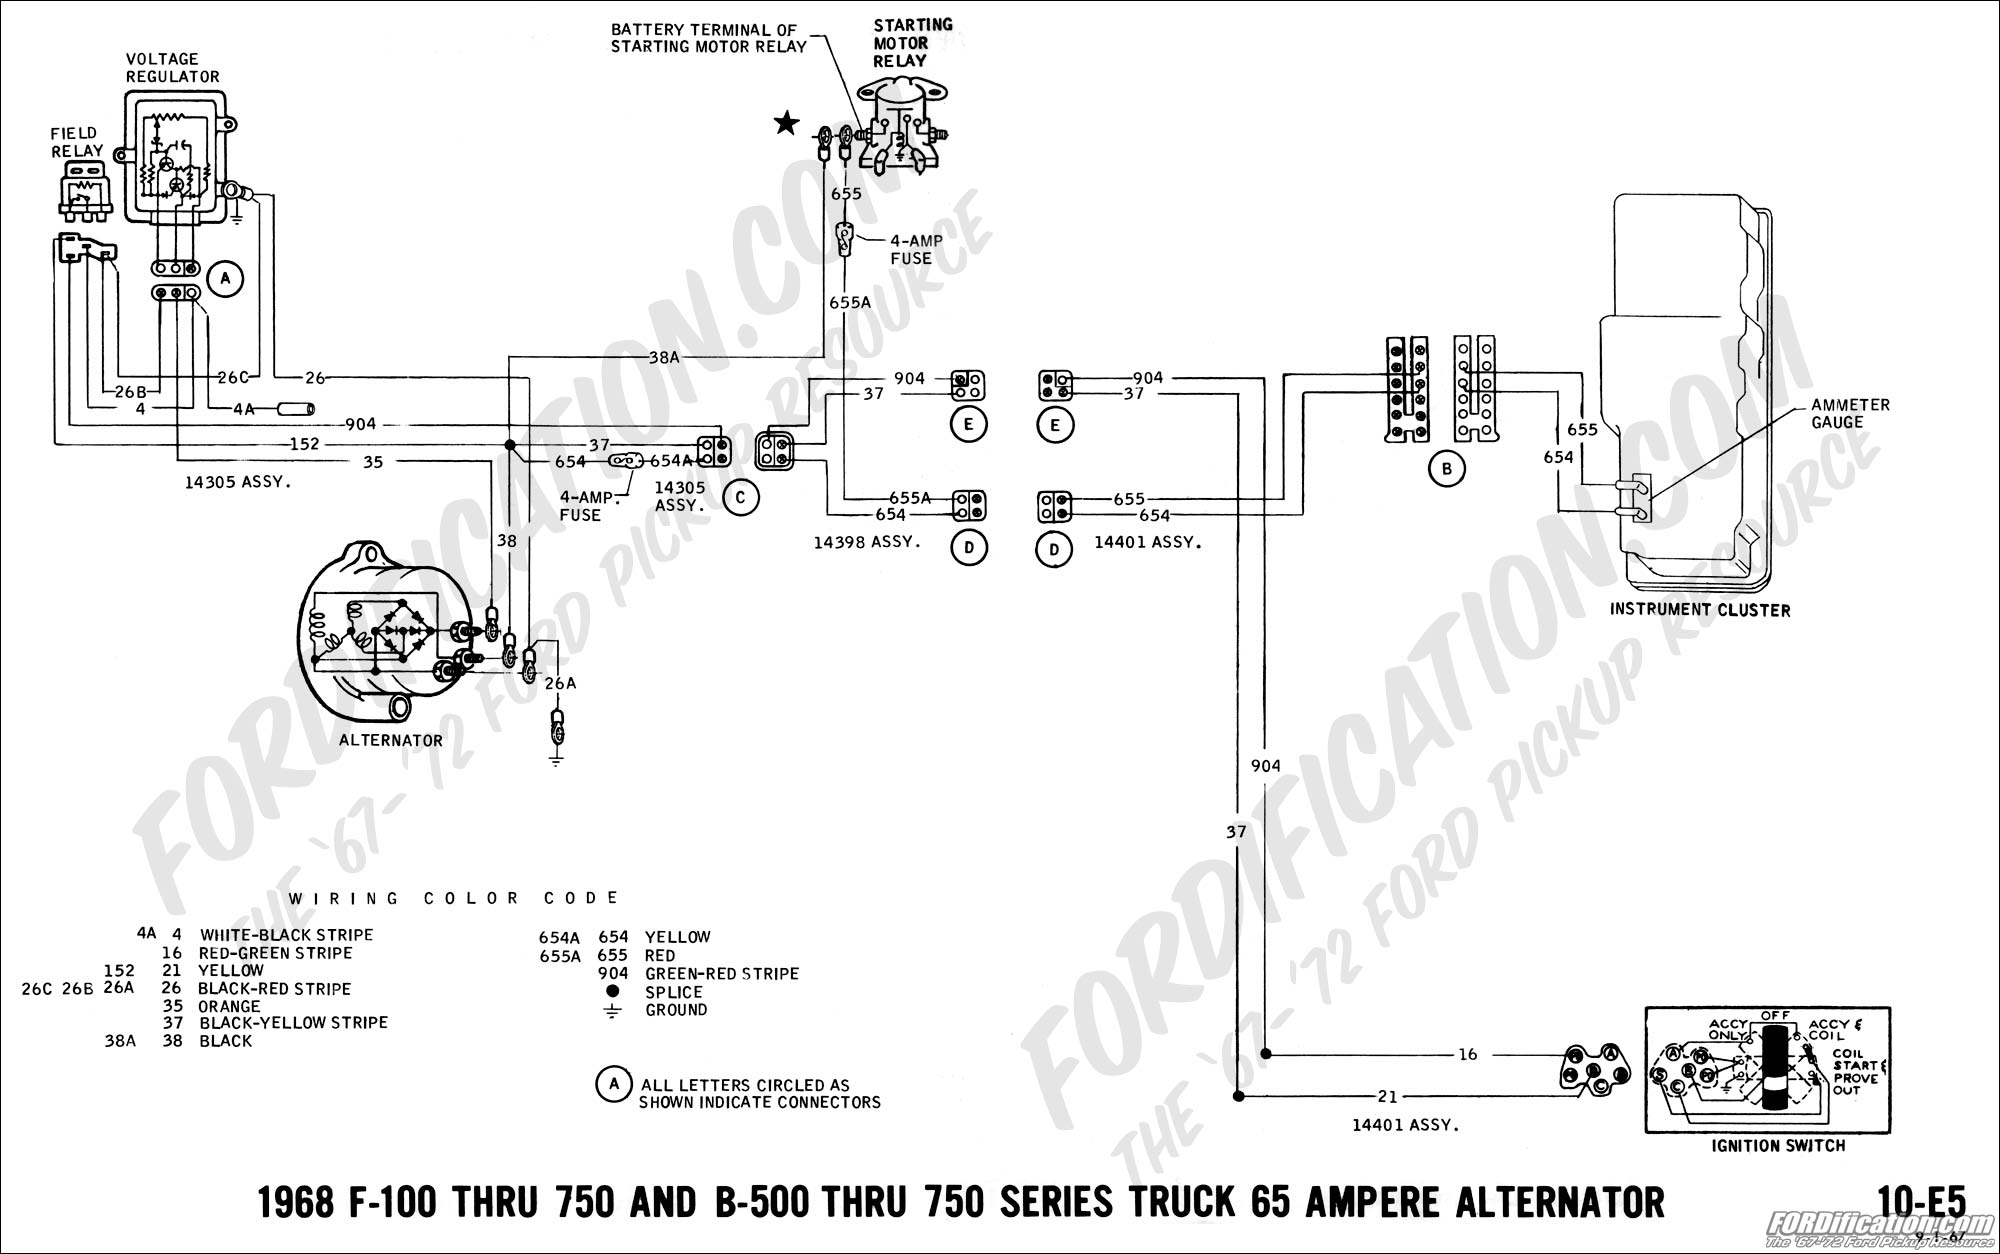 Ford Aftermarket Voltmeter Wiring Diagram Smart Wiring Diagrams \u2022 DC  Amp Meter Wiring Diagram Dc Voltmeter Wiring Diagram